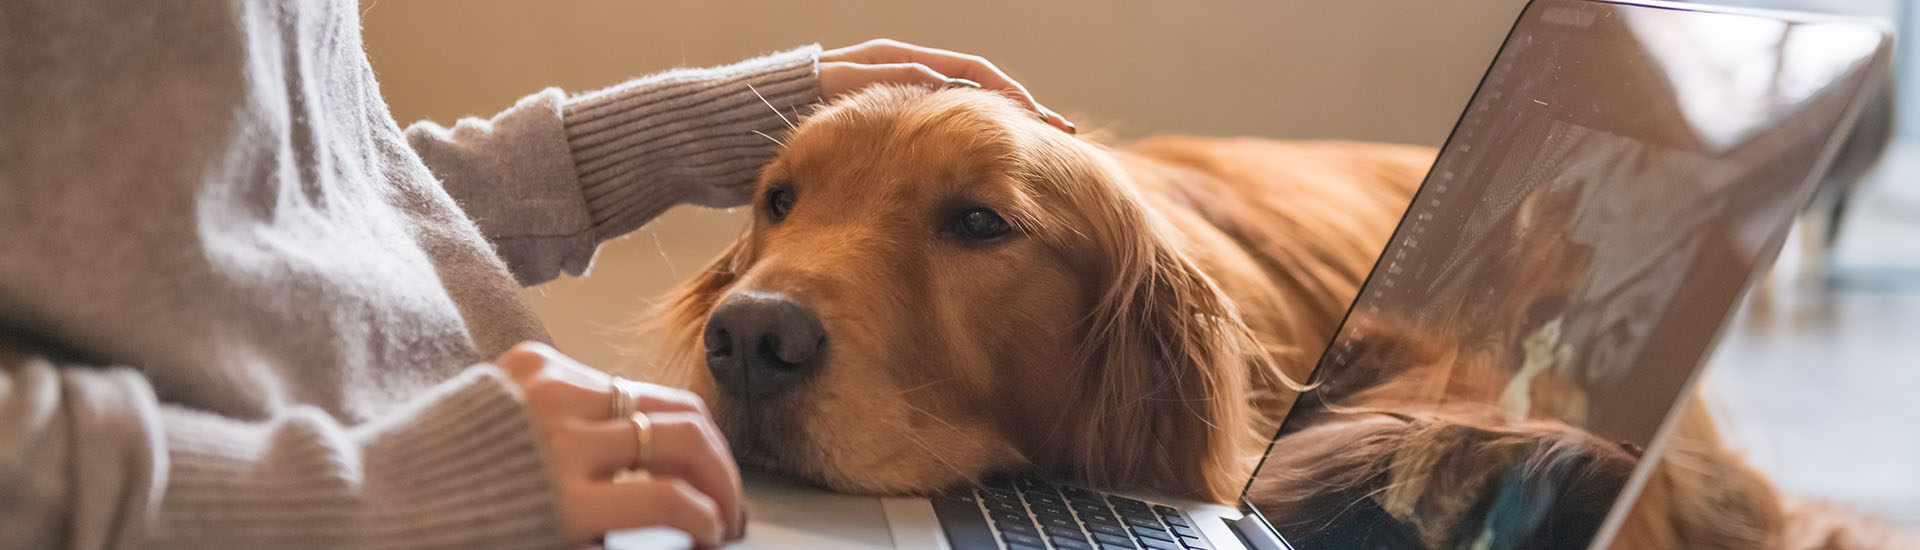 The Golden Retriever Dog works with the owner.